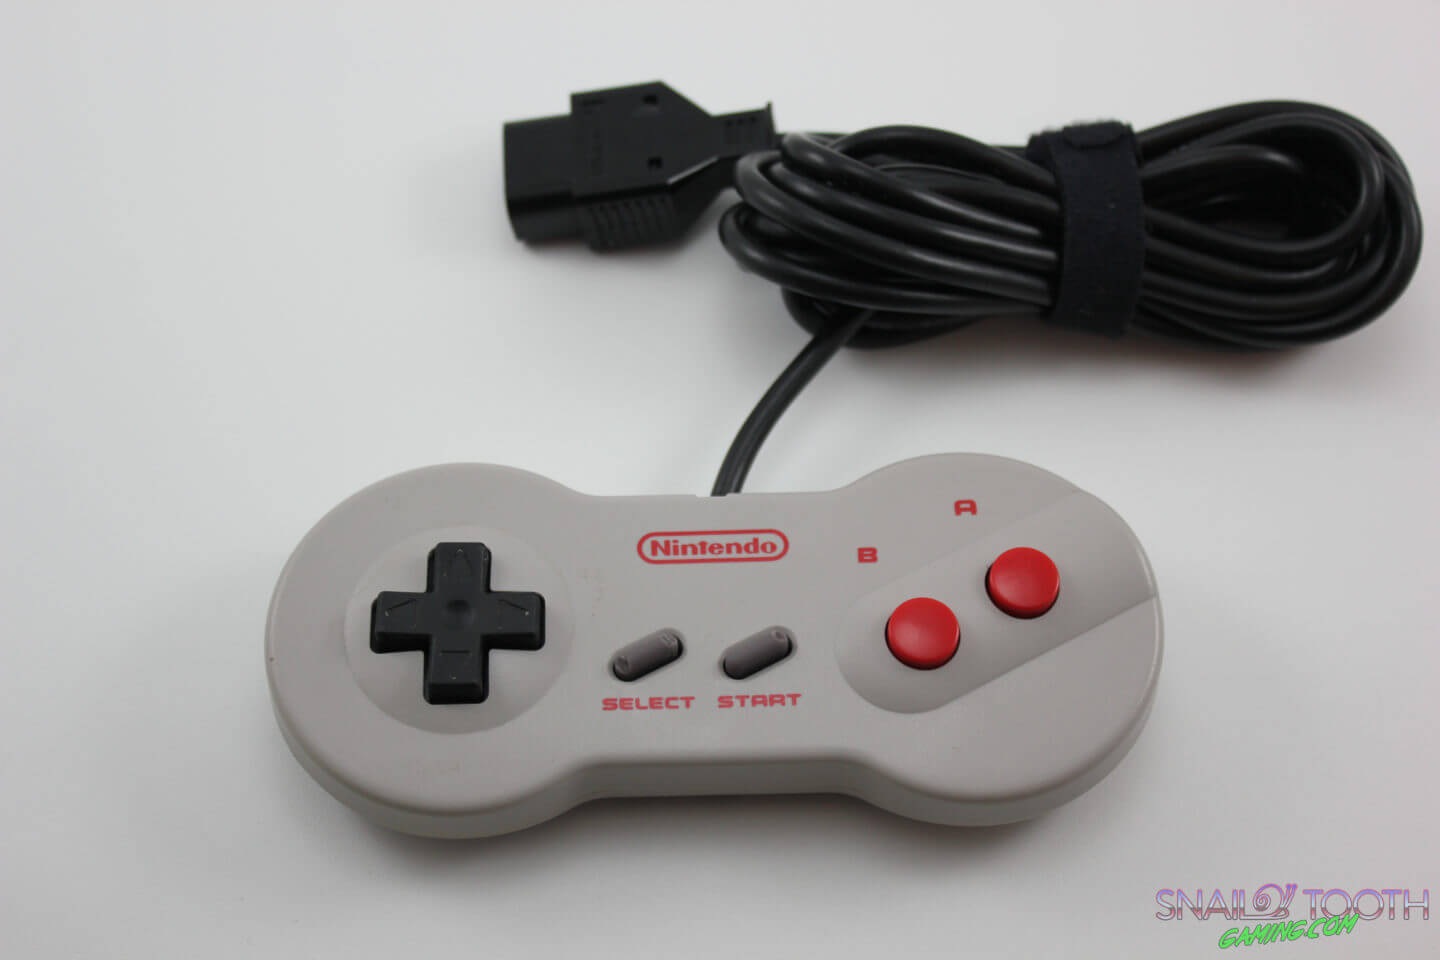 The Best Controllers for Classic Nintendo Consoles | Snail Tooth Gaming